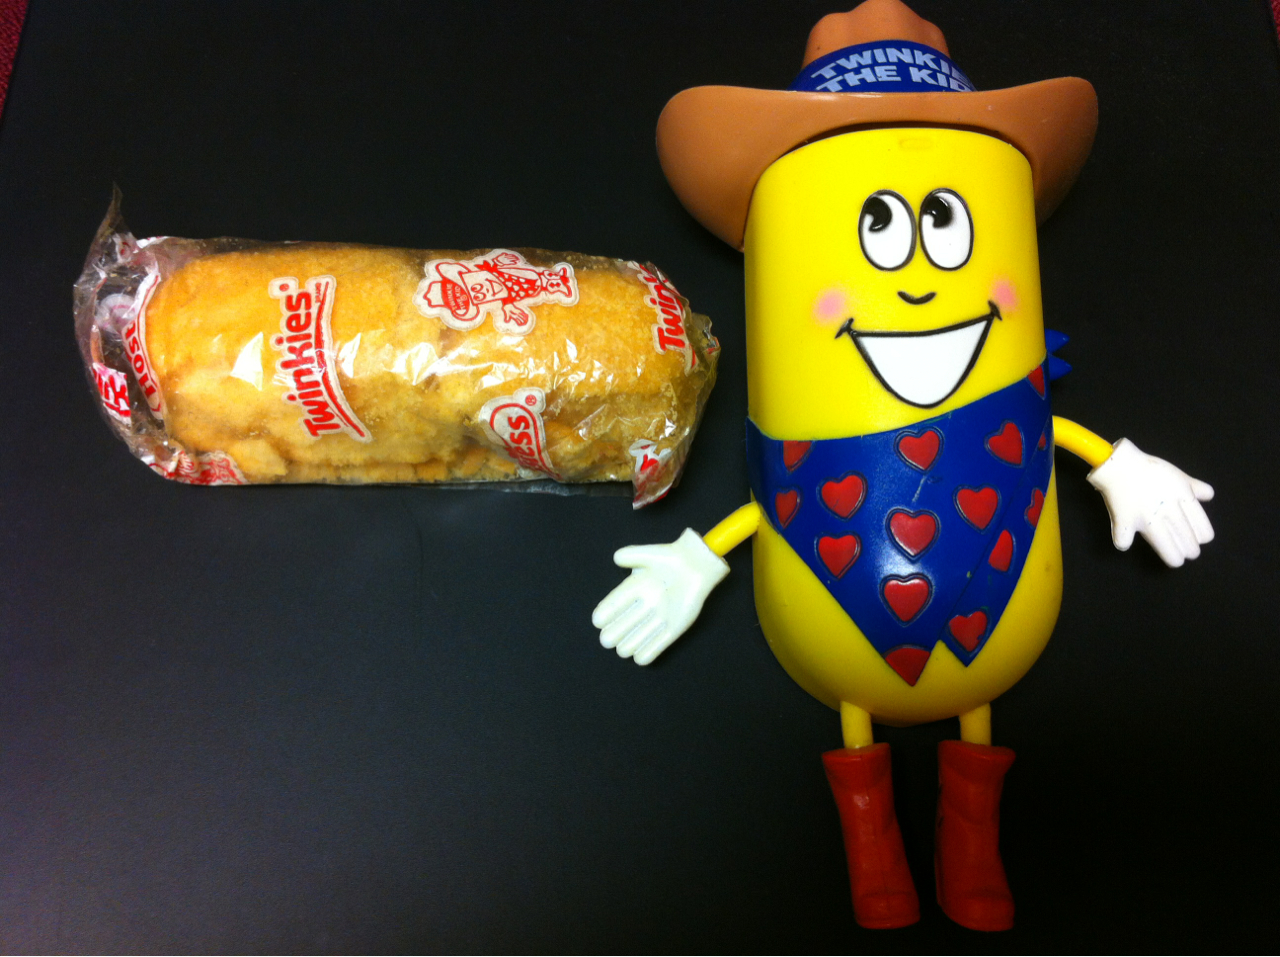 This is what a 13 year old Twinkie looks like. I've had this in the Twinkie sarcophagus bestowed upon me by former co-workers. The wrap is airtight still but a sickly sweet smell permeates through the thin plastic. The Twinkie is crumbling with age and feels petrified. I do not believe it is edible.